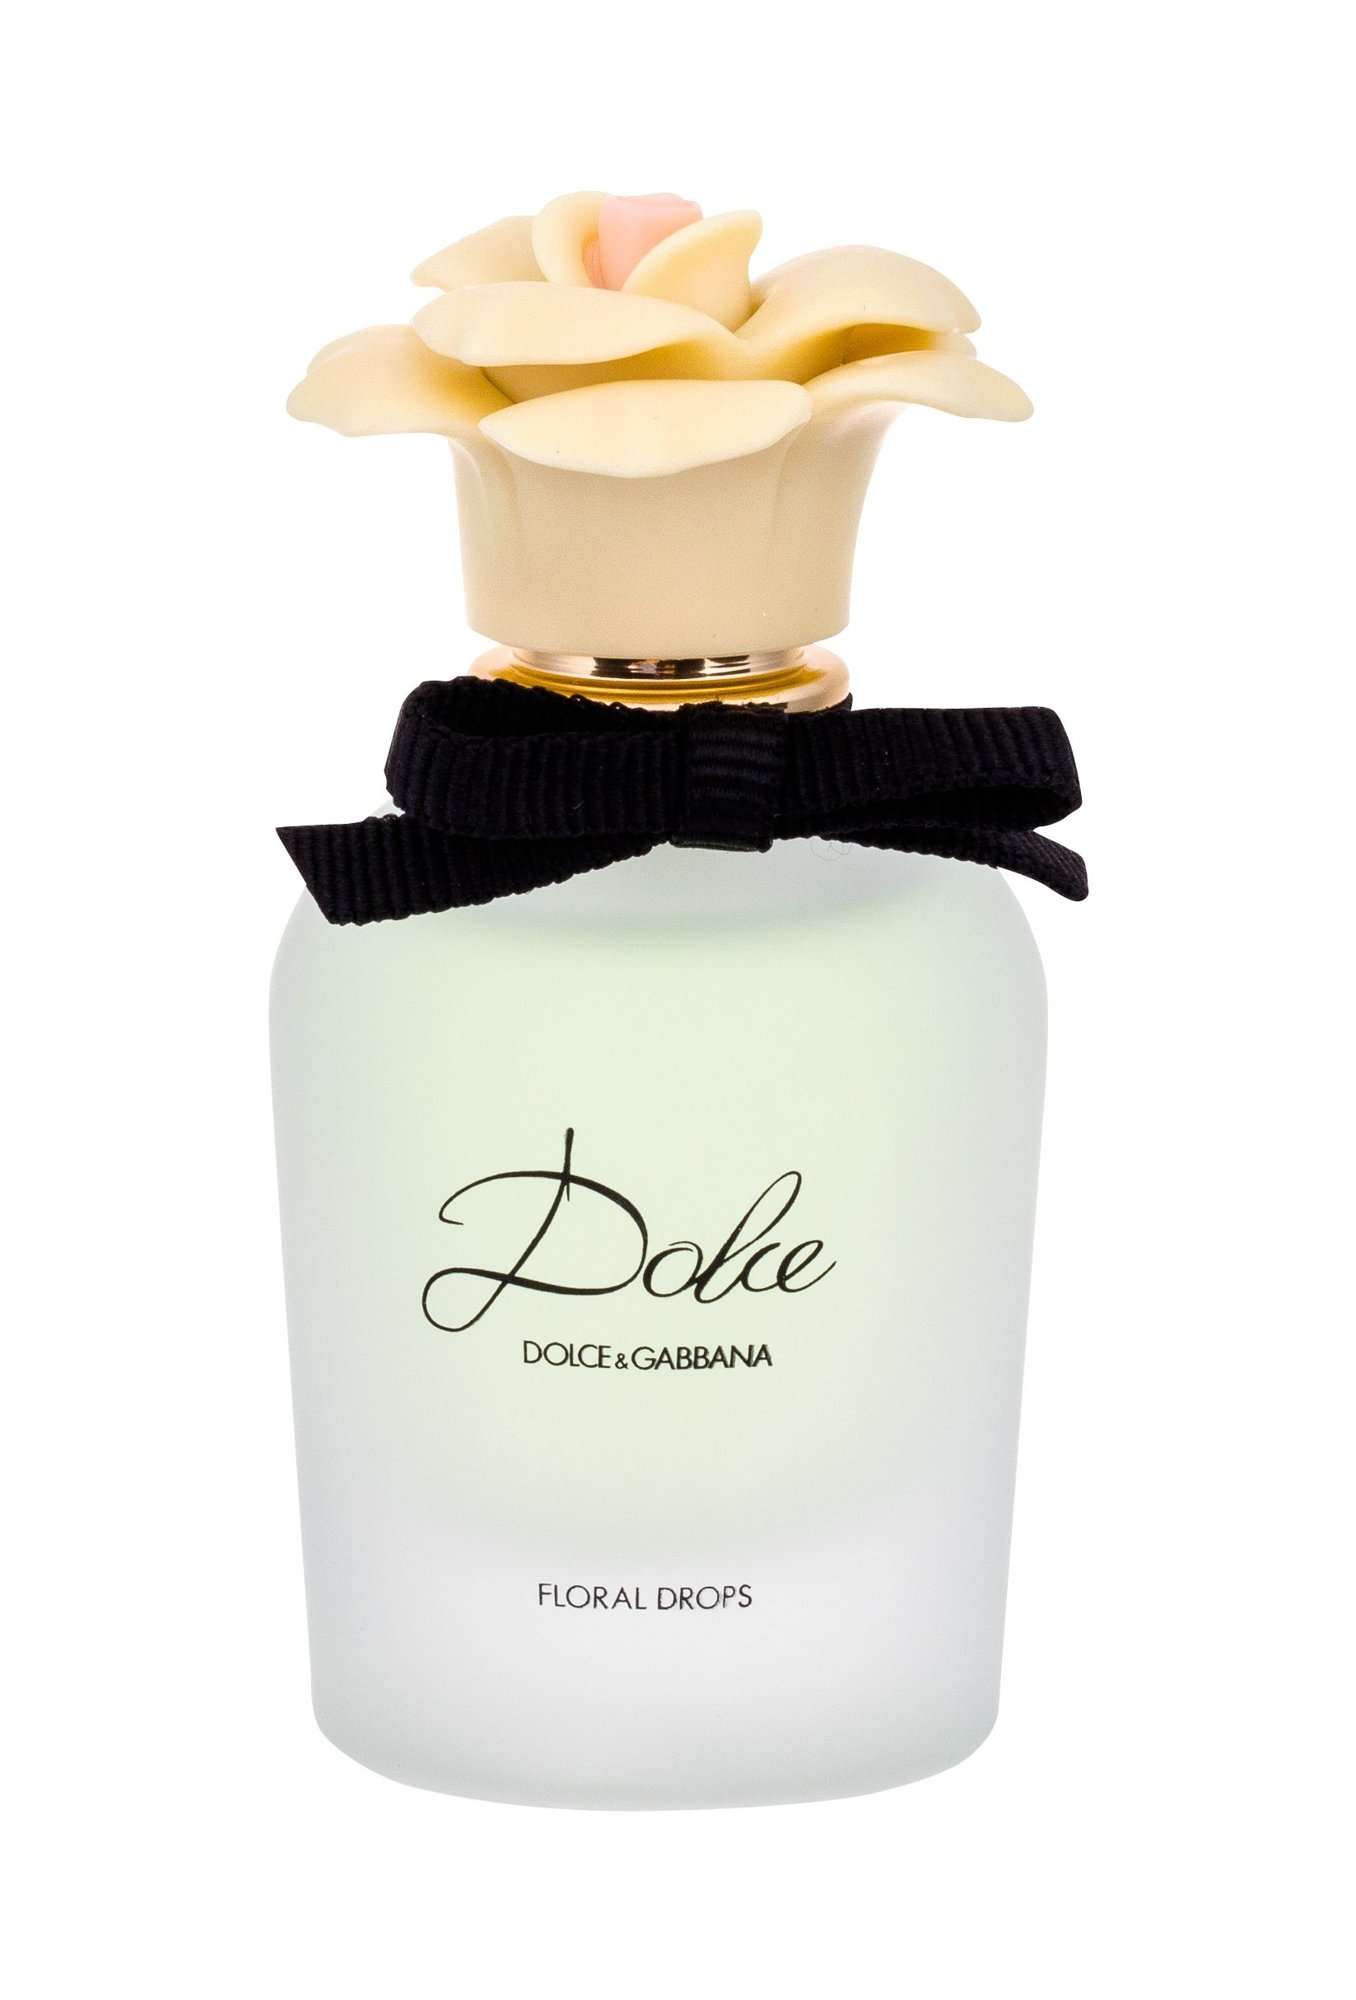 Dolce&Gabbana Dolce EDT 30ml  Floral Drops